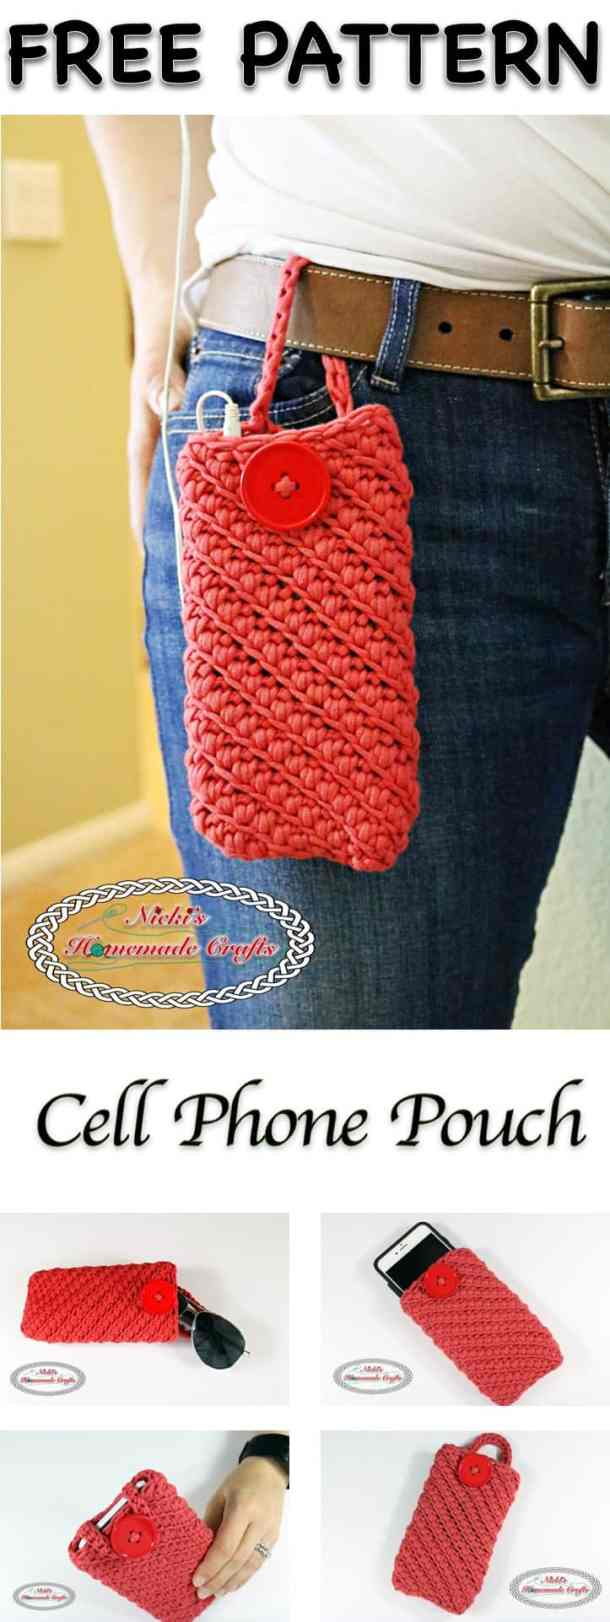 Cell Phone Pouch - Free Crochet Pattern by Nicki's Homemade Crafts